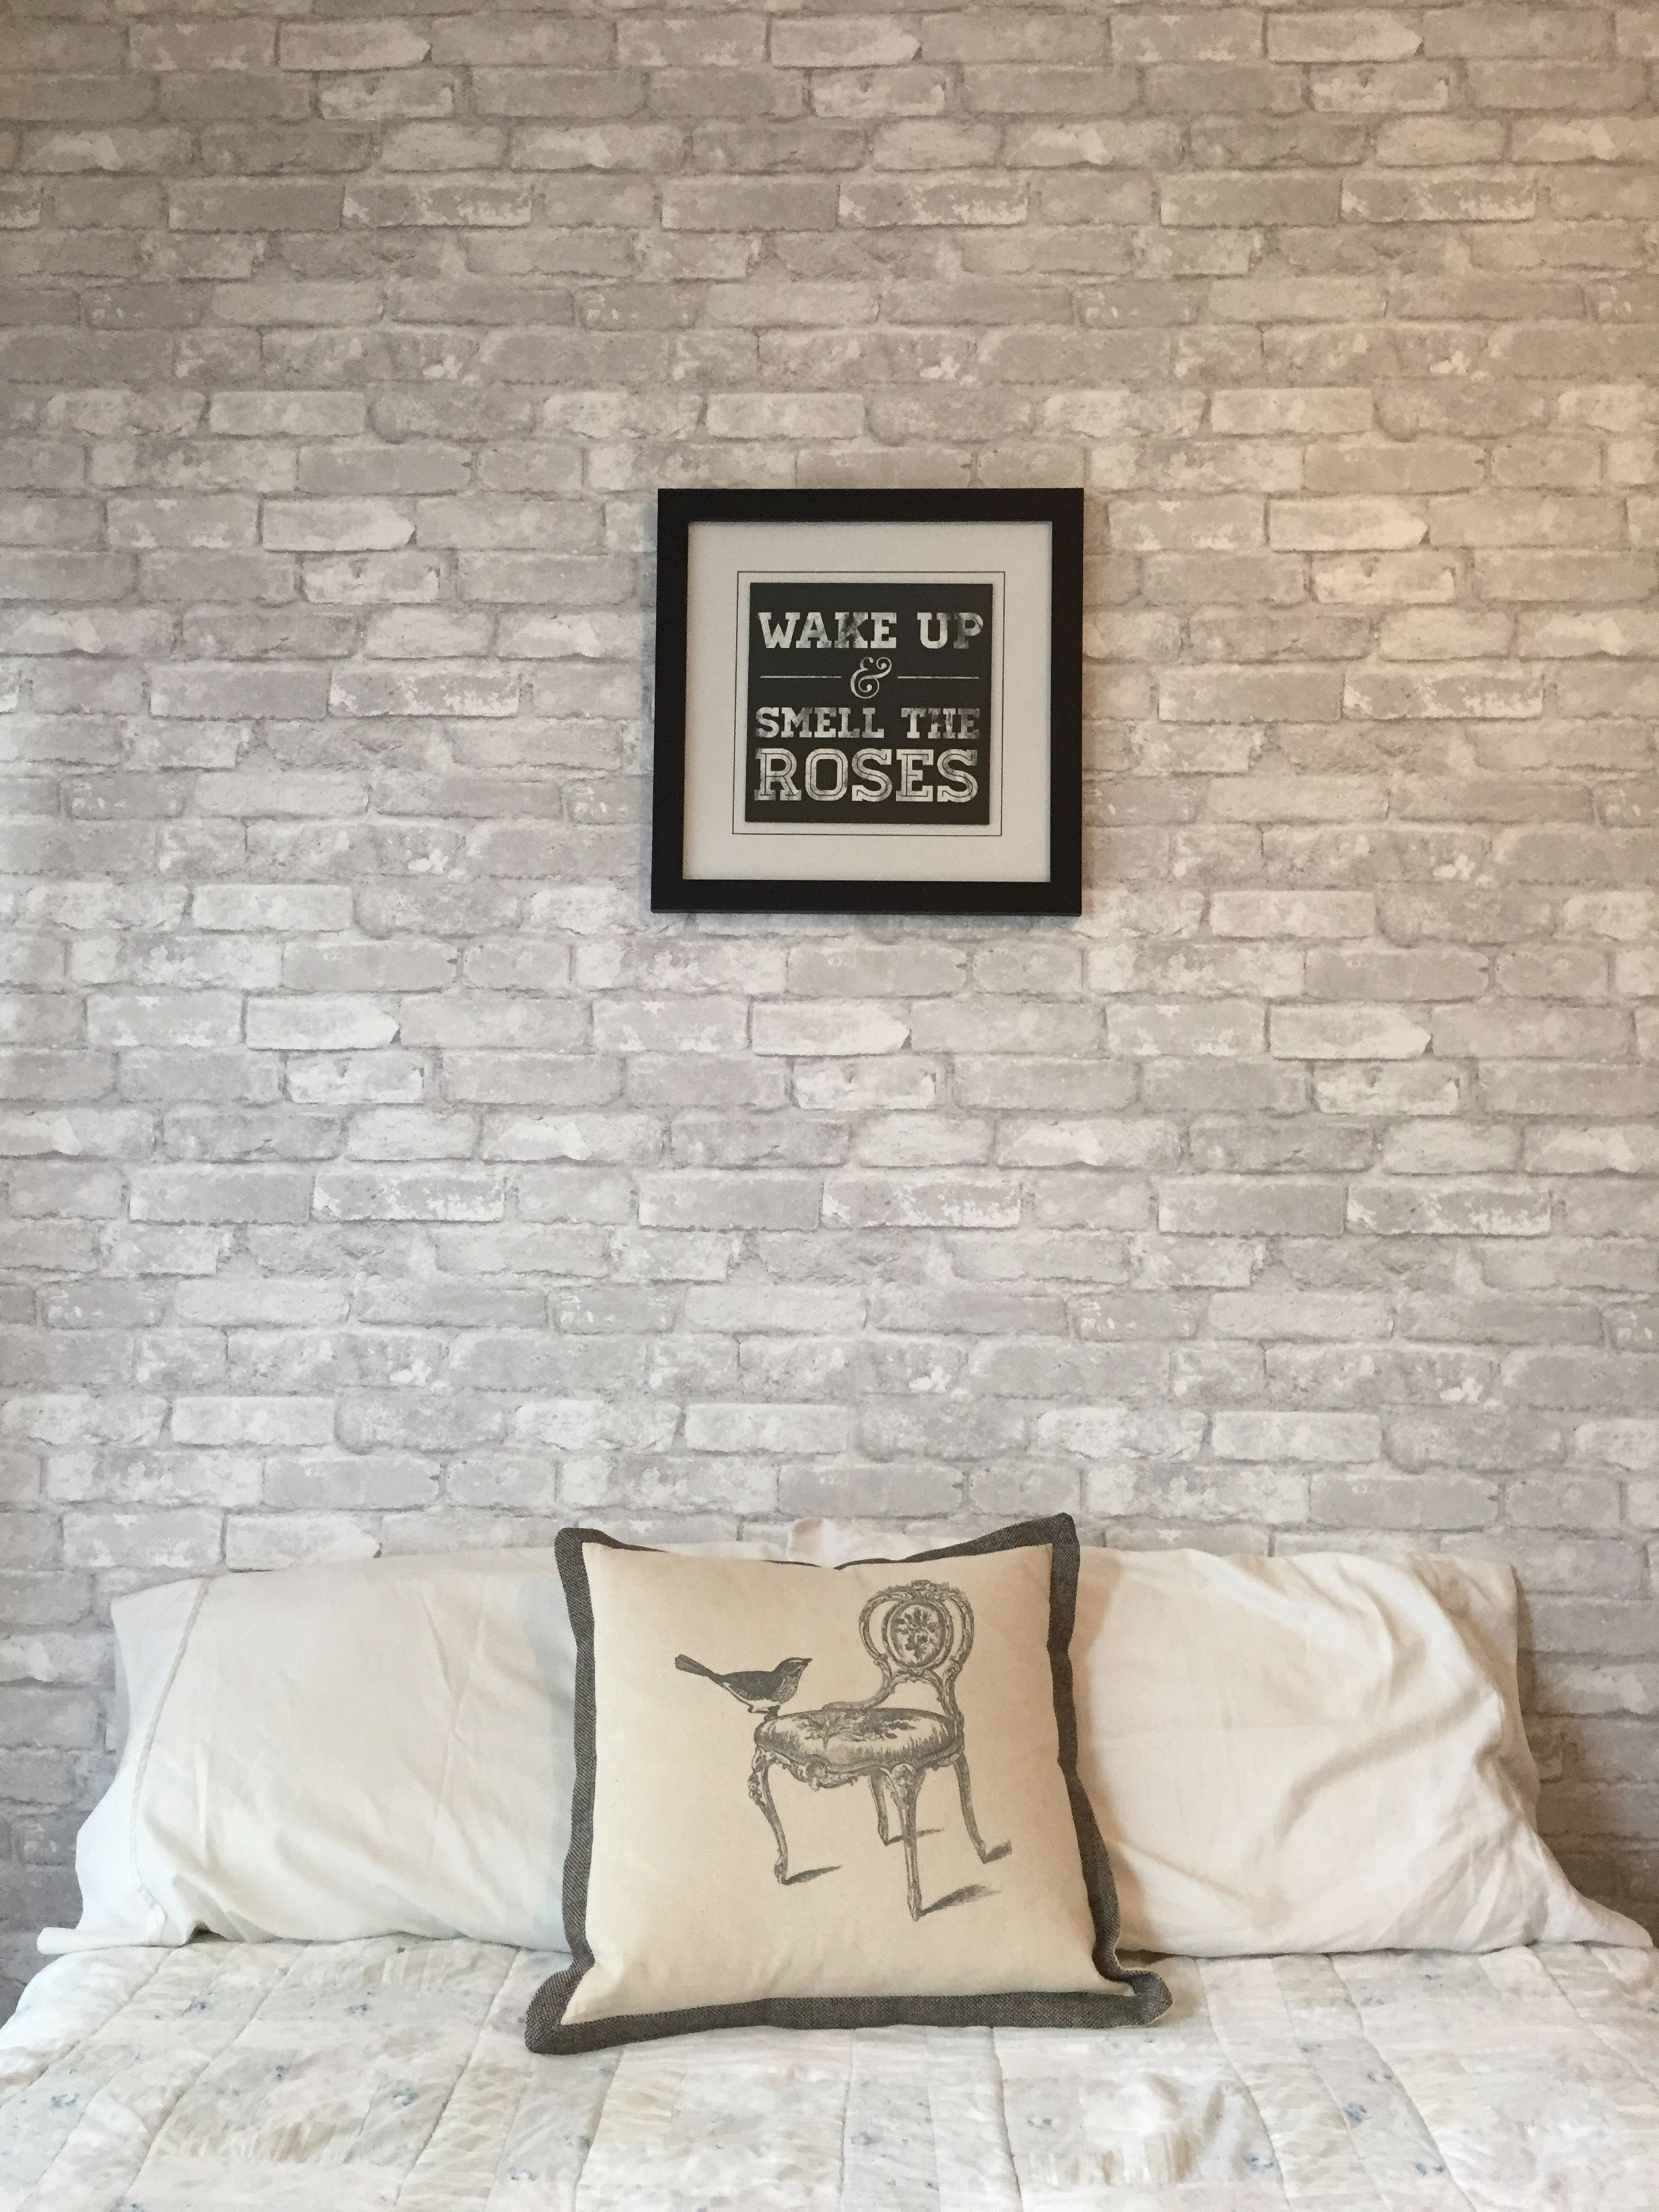 Loving This Feature Wall Made With White Brick Removable Wallpaper!